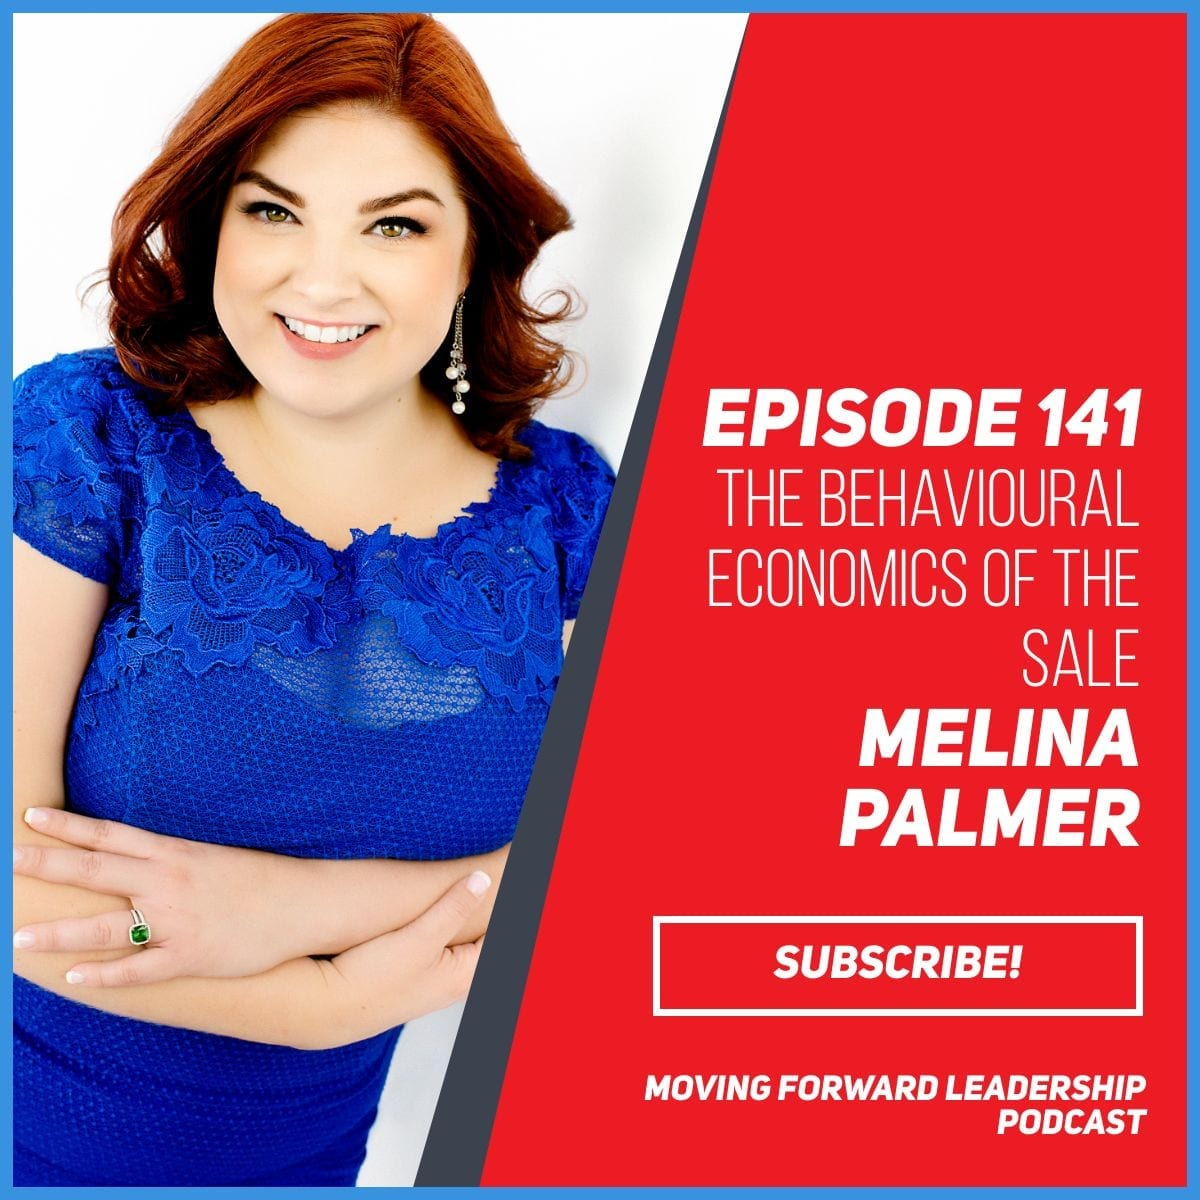 The Behavioural Economics of the Sale | Melina Palmer | Episode 141